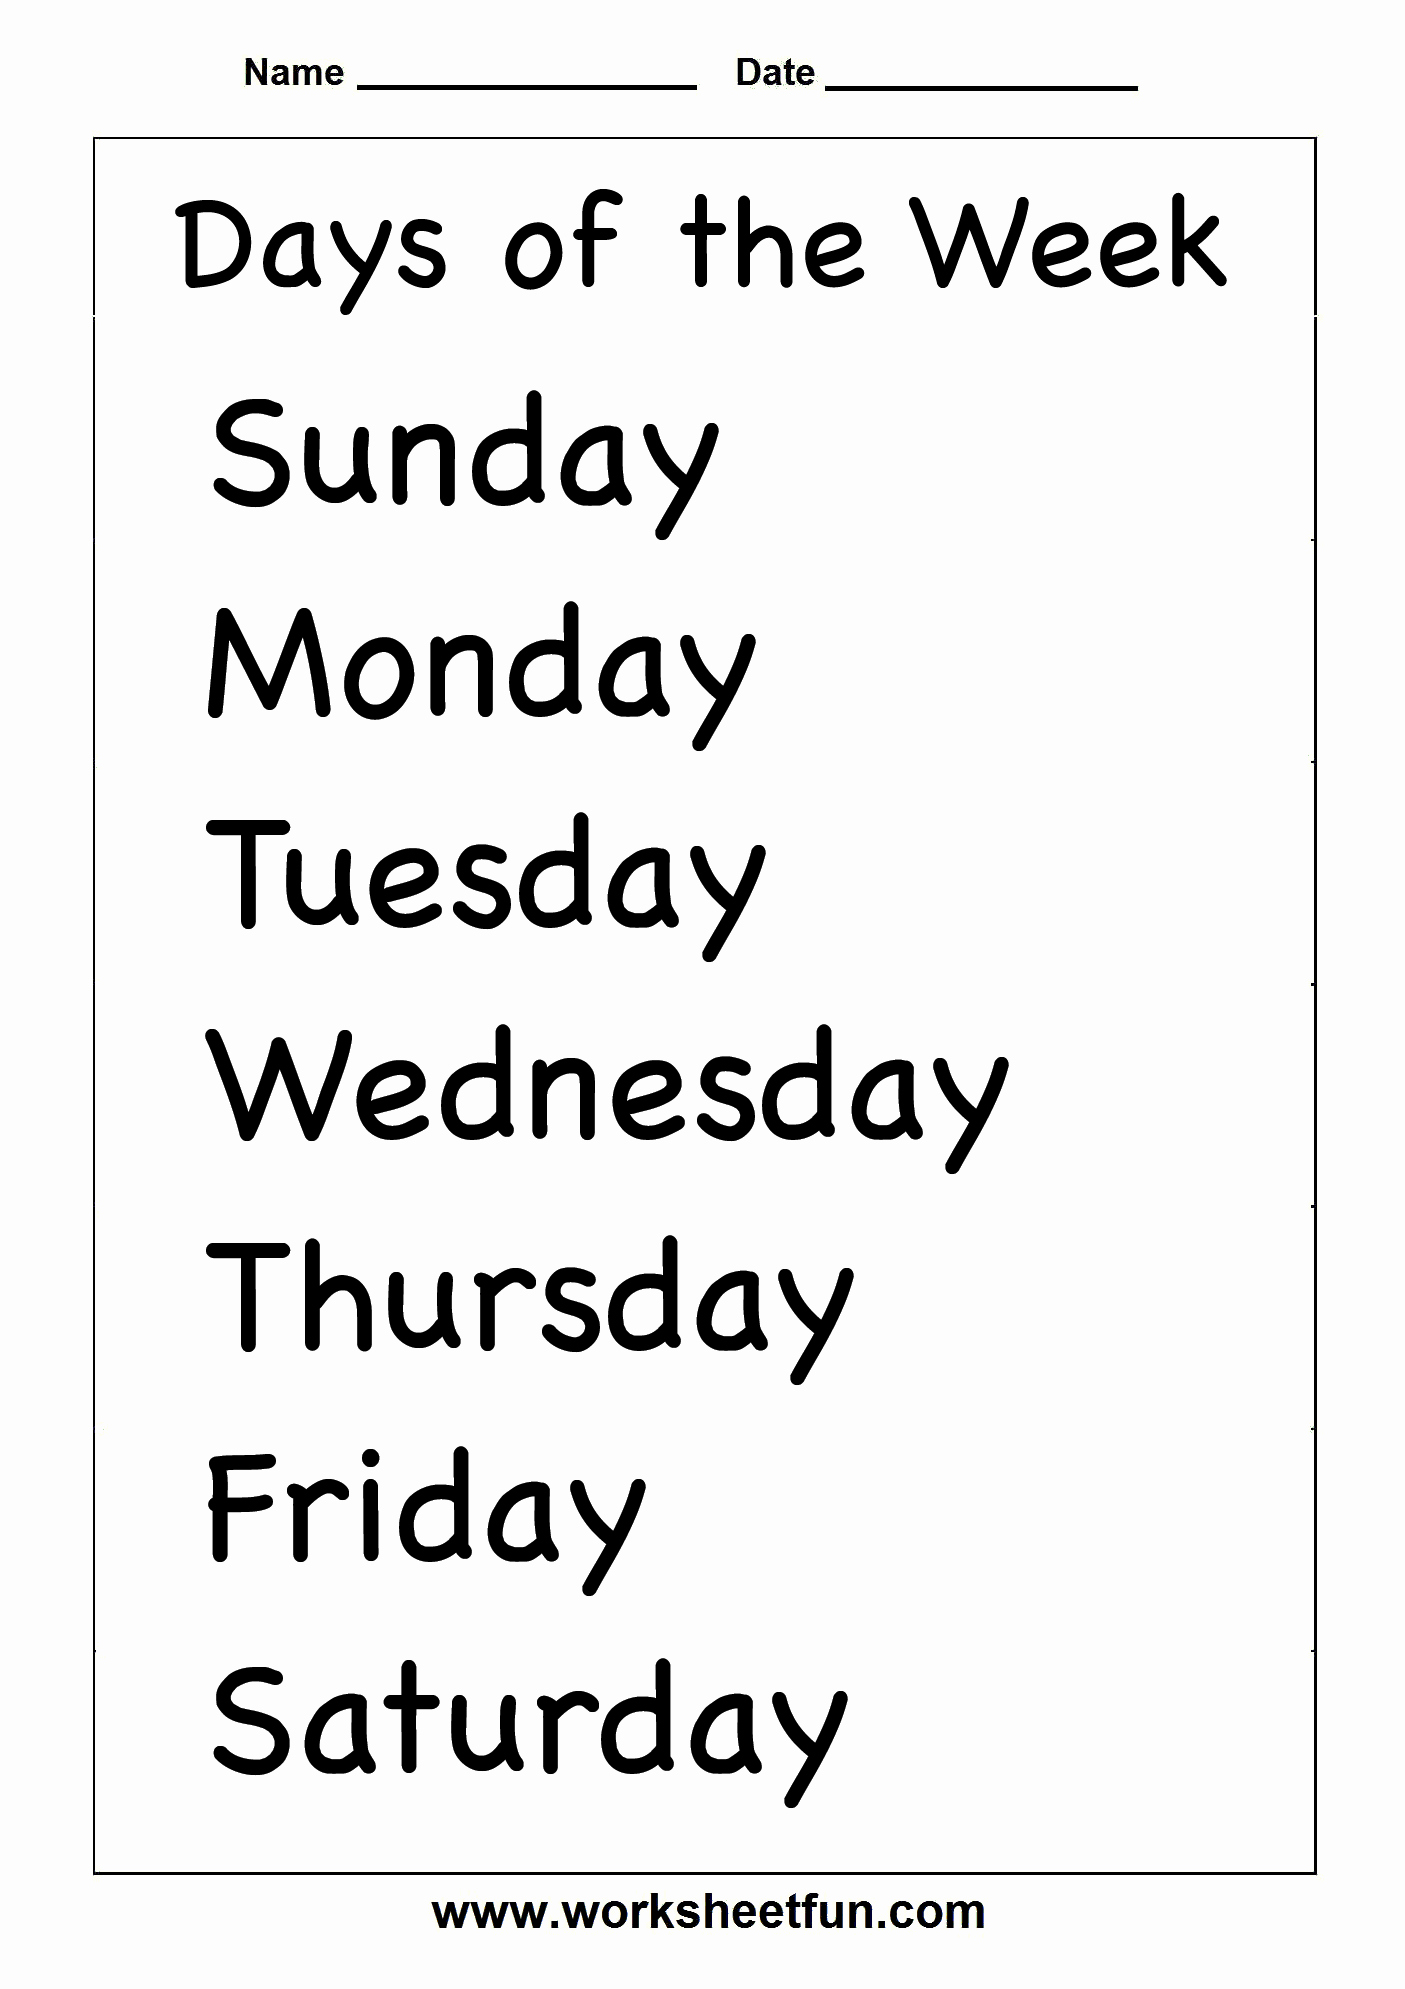 Days Of the Week Horizontal Beautiful Days Of the Week – 2 Worksheets Free Printable